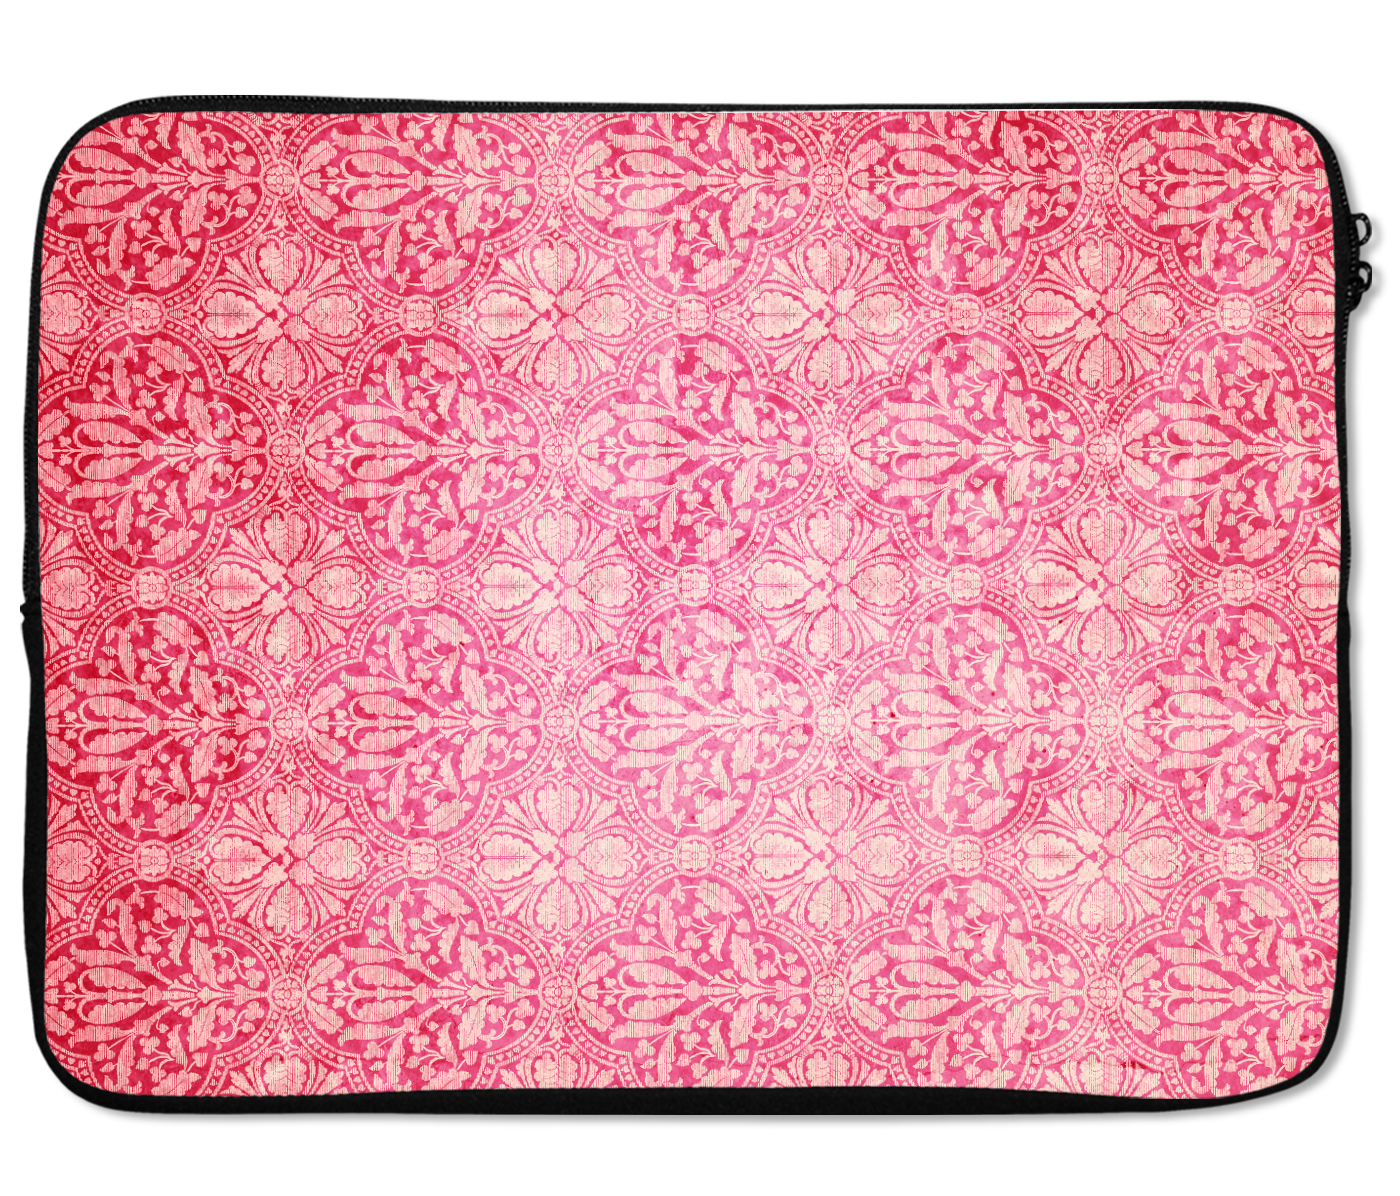 Laptops Tablet Sleeves Pretty Damask Vintage Pink Pattern Premium Quality Neoprene Laptop Protection